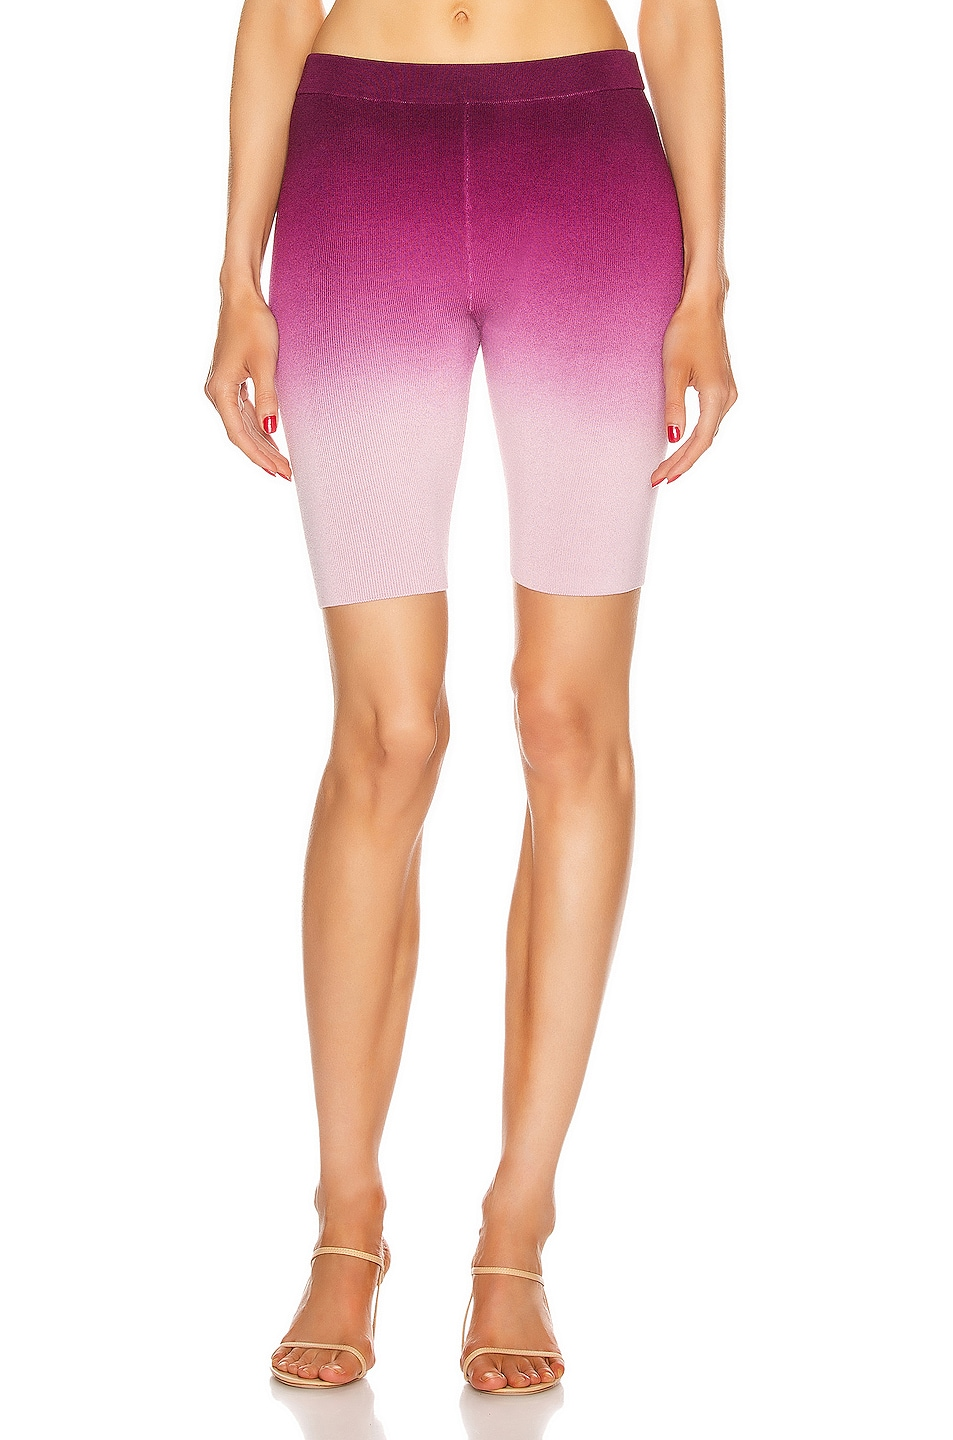 Image 1 of JONATHAN SIMKHAI Ombre Compact Knit Biker Short in Magenta Ombre